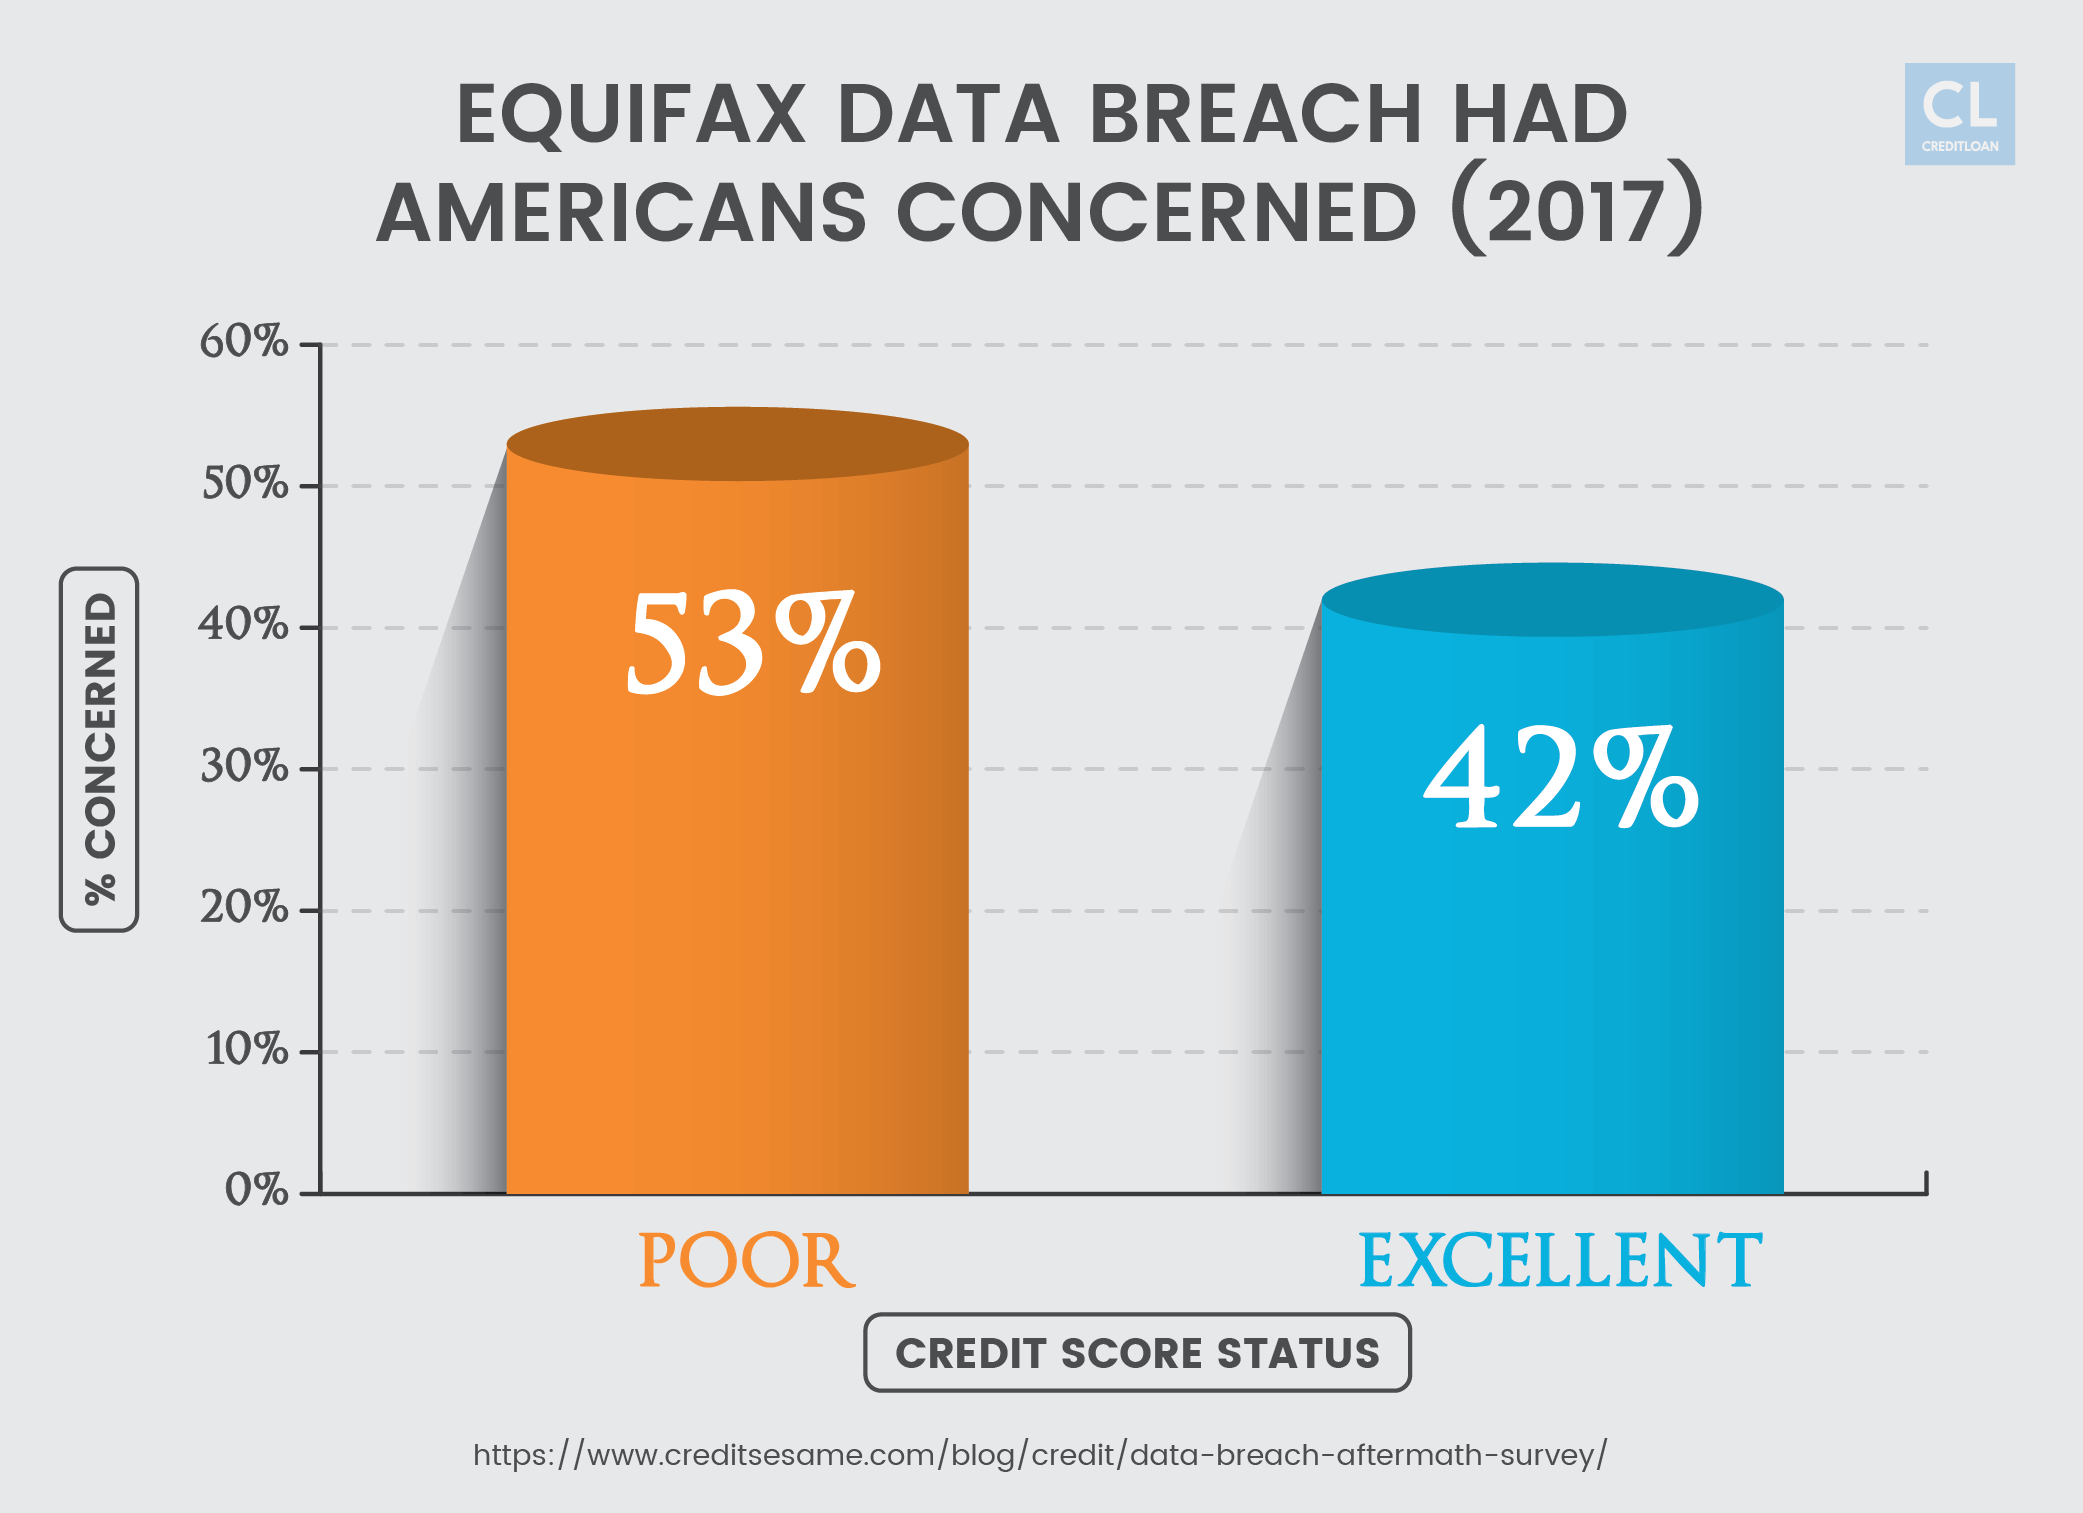 Equifax Data Breach had Americans Concerned